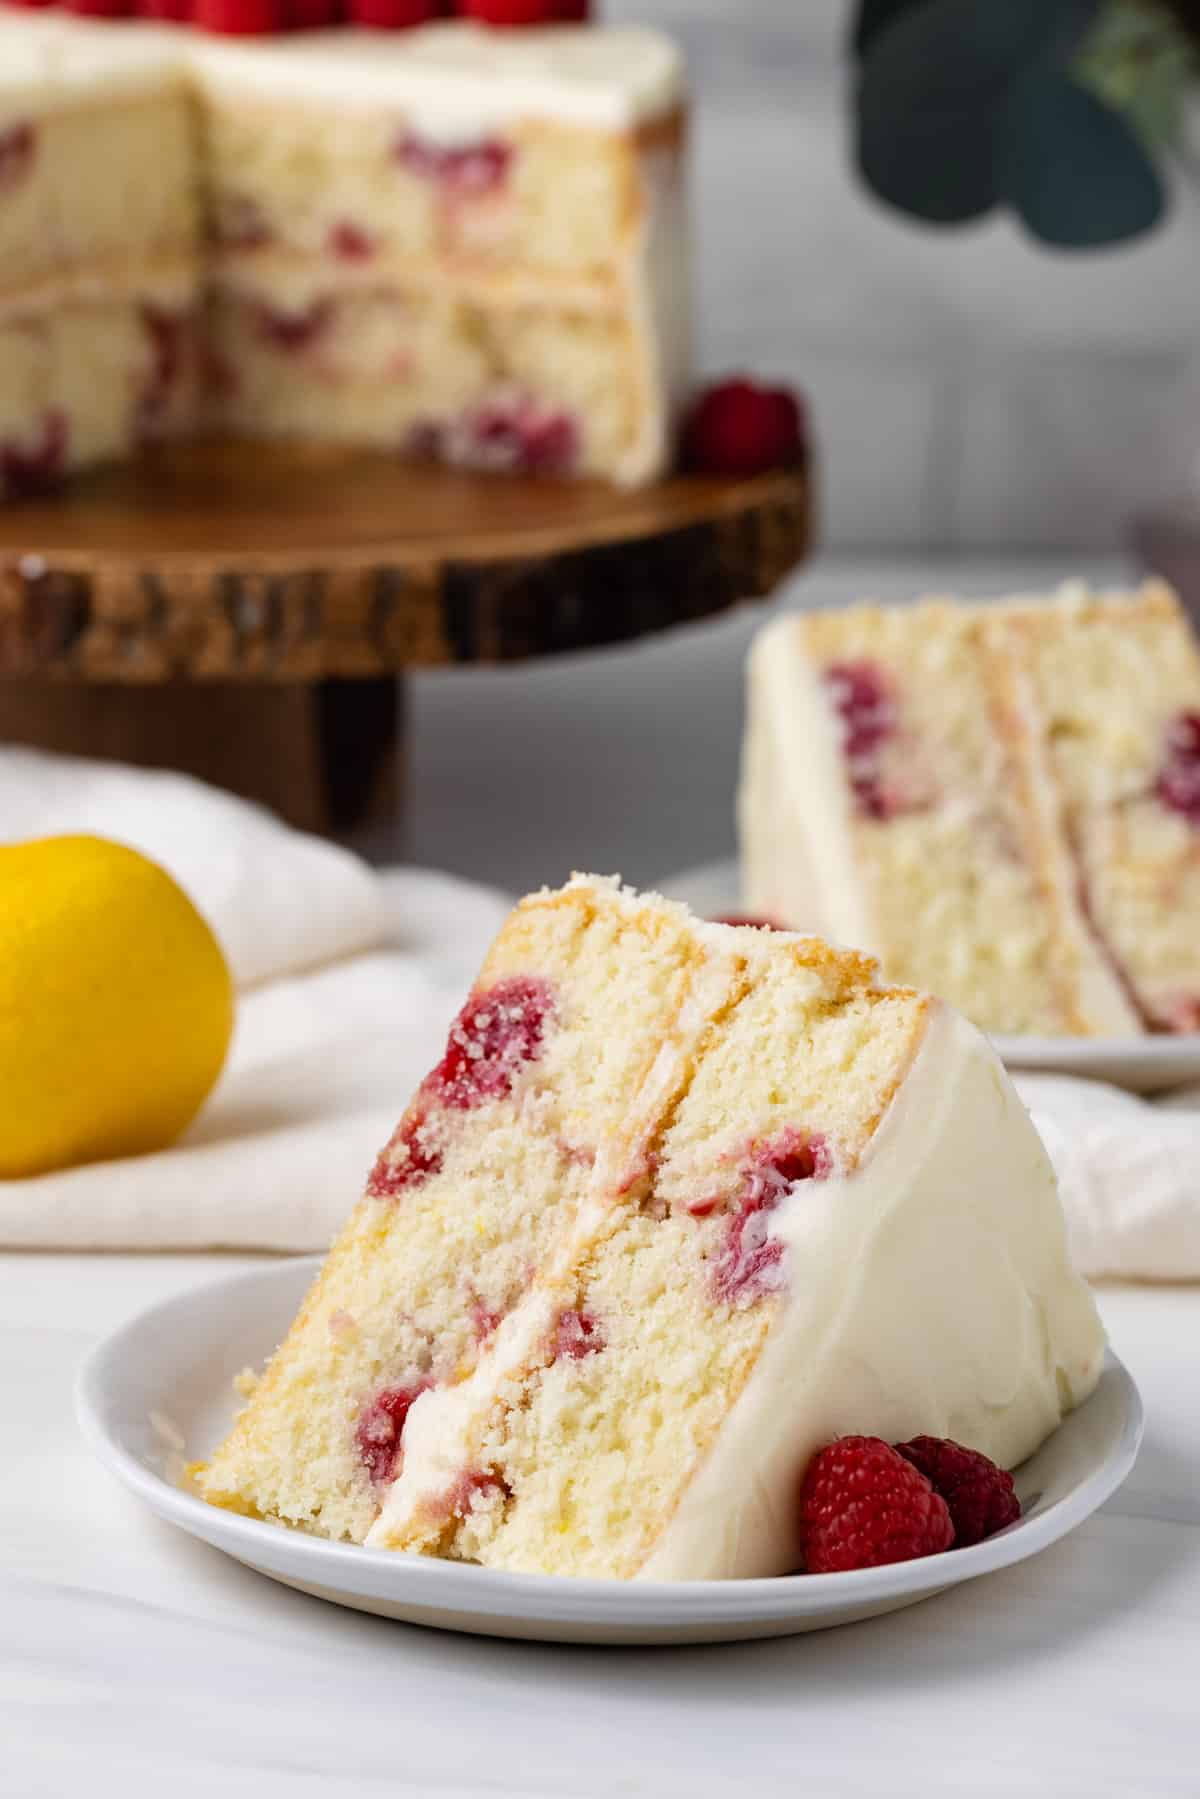 A slice of lemon raspberry cake on a plate in front of the lemon raspberry cake